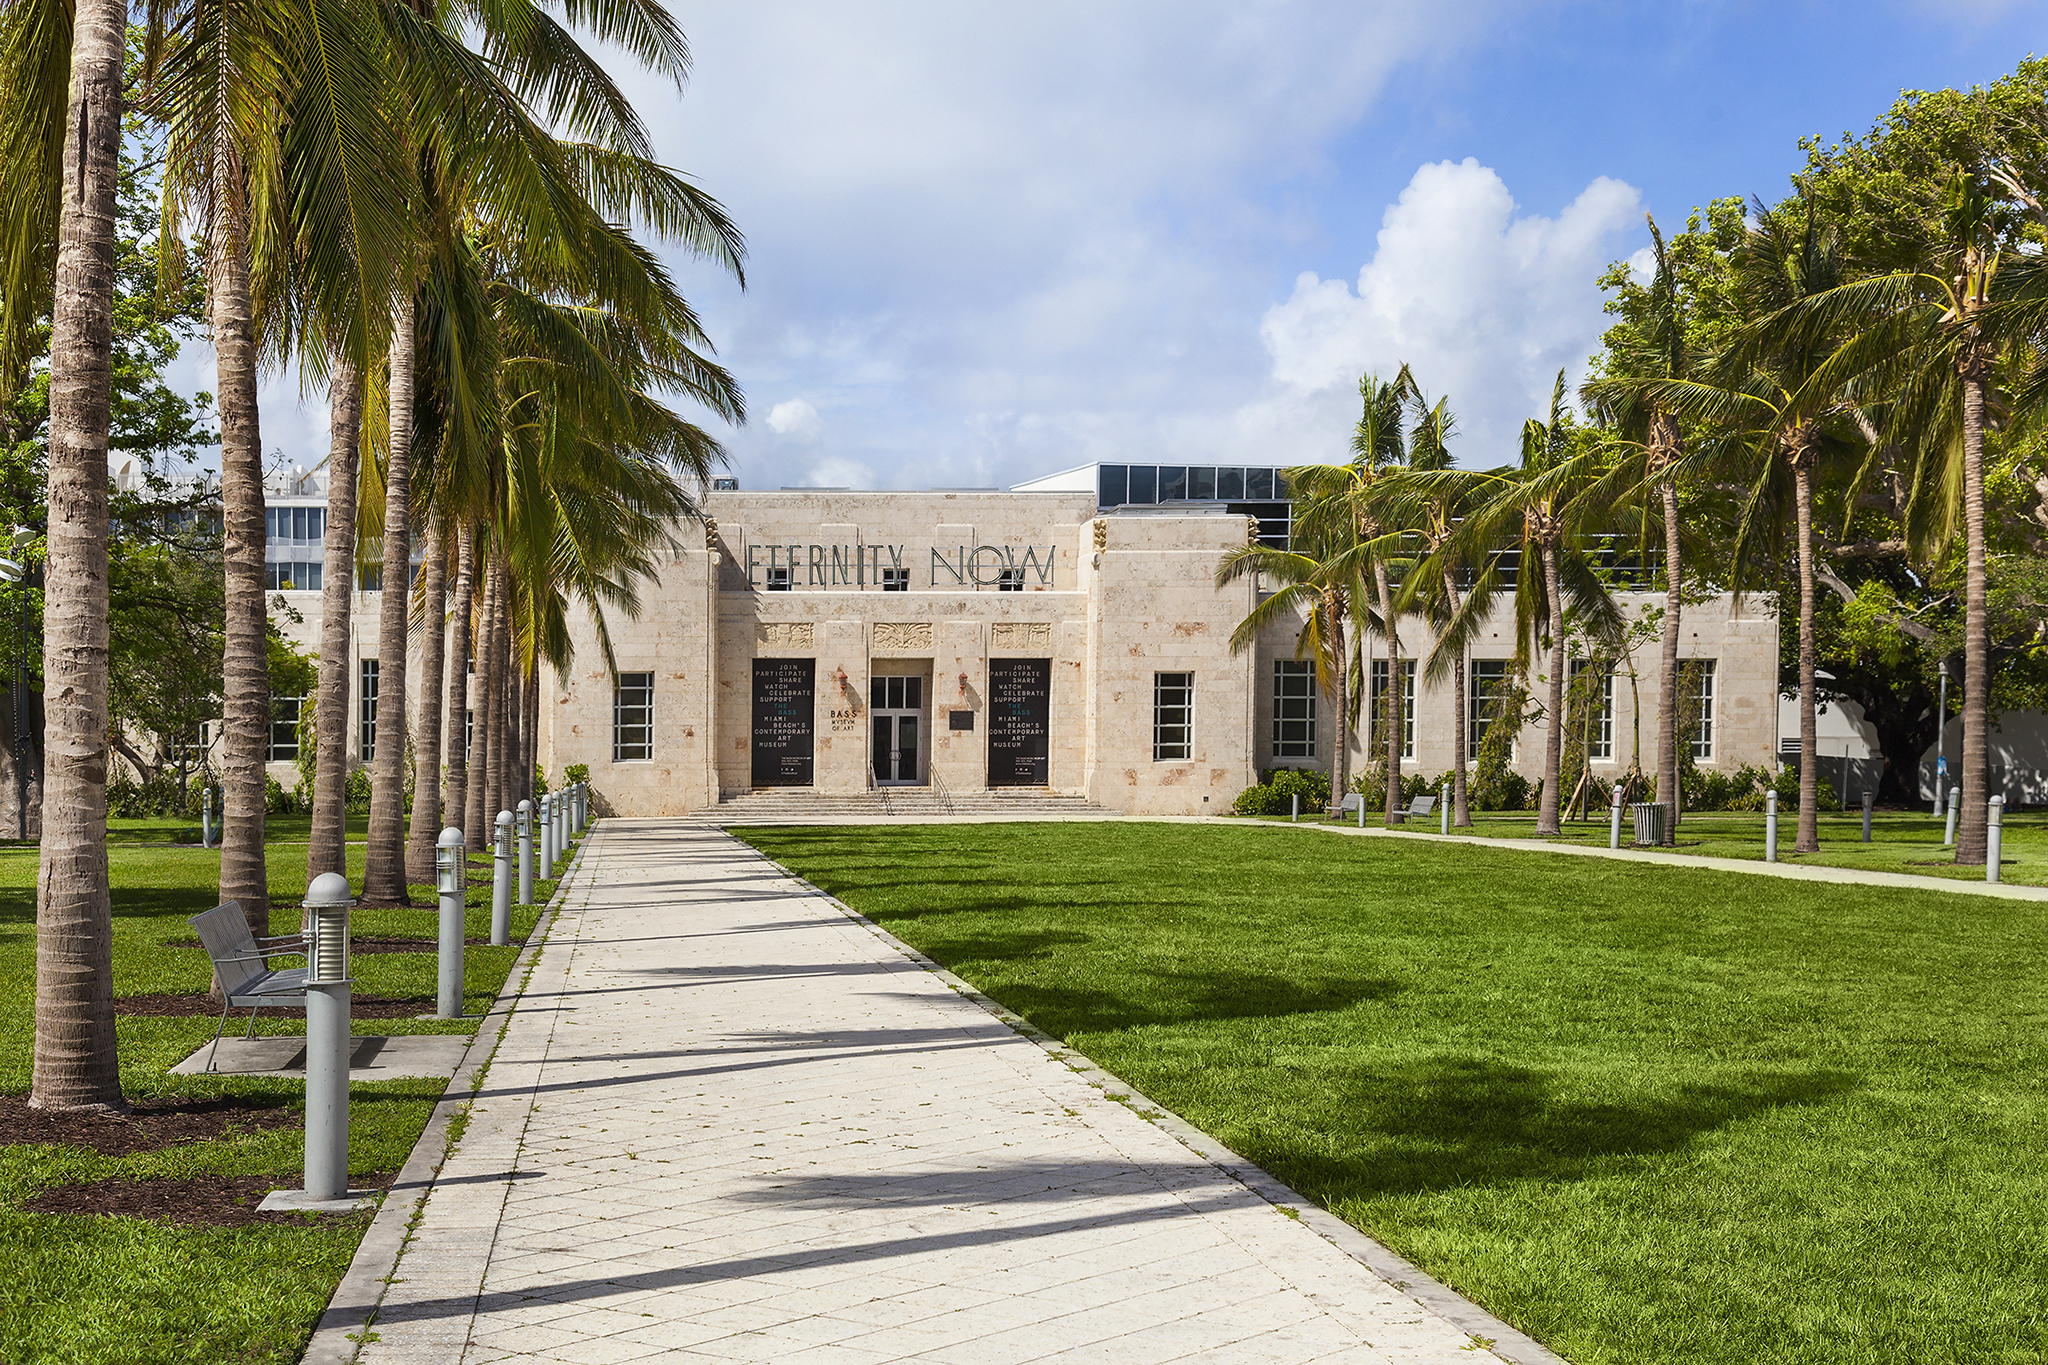 The essential Miami museums to visit